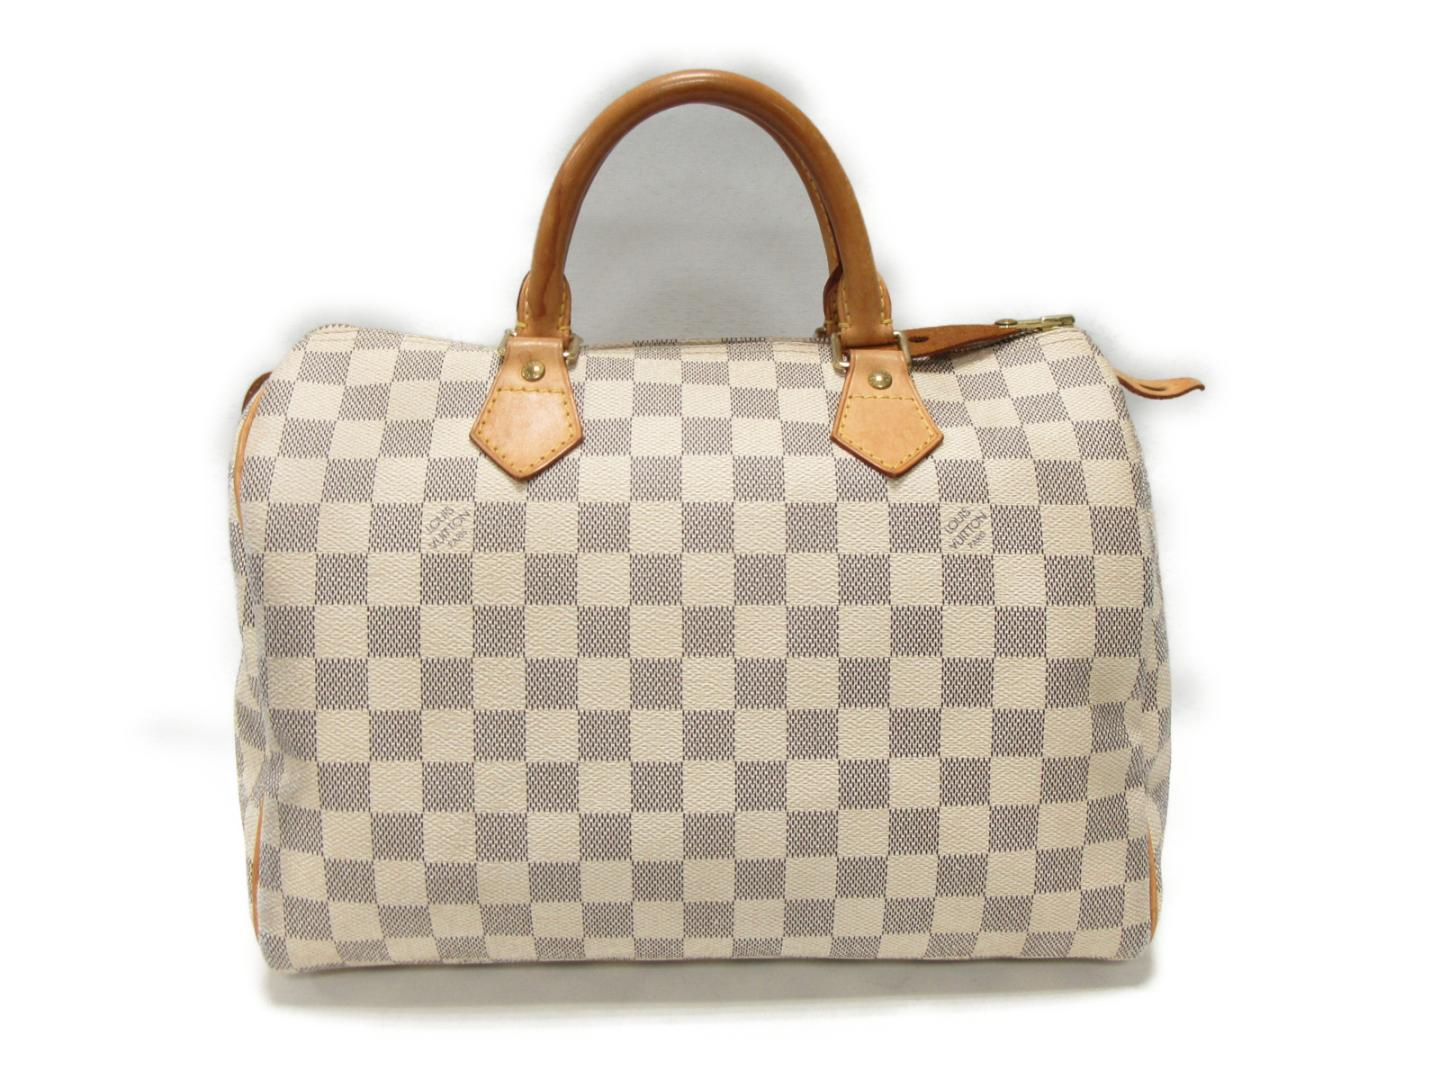 303cb34adda5 Authentic LOUIS VUITTON Speedy 30 Boston hand Bag N41533 Damier Azur